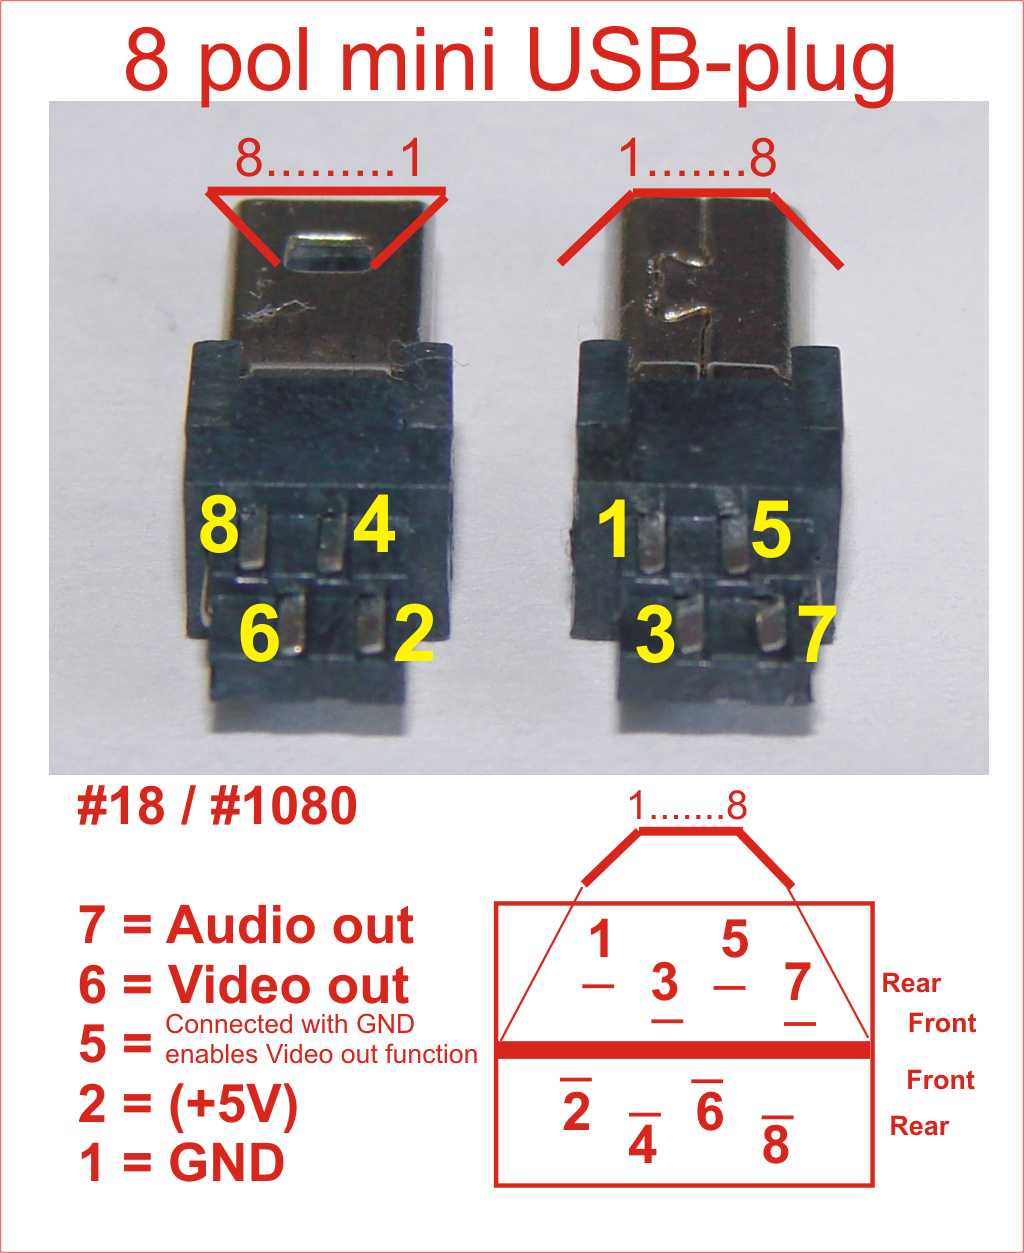 Phone Connector Wiring also Watch For These Electrical Hazards In Your Home together with Telephone Handset Cord Wiring Diagram likewise Adsl together with work Instructions. on old phone wiring plug diagram